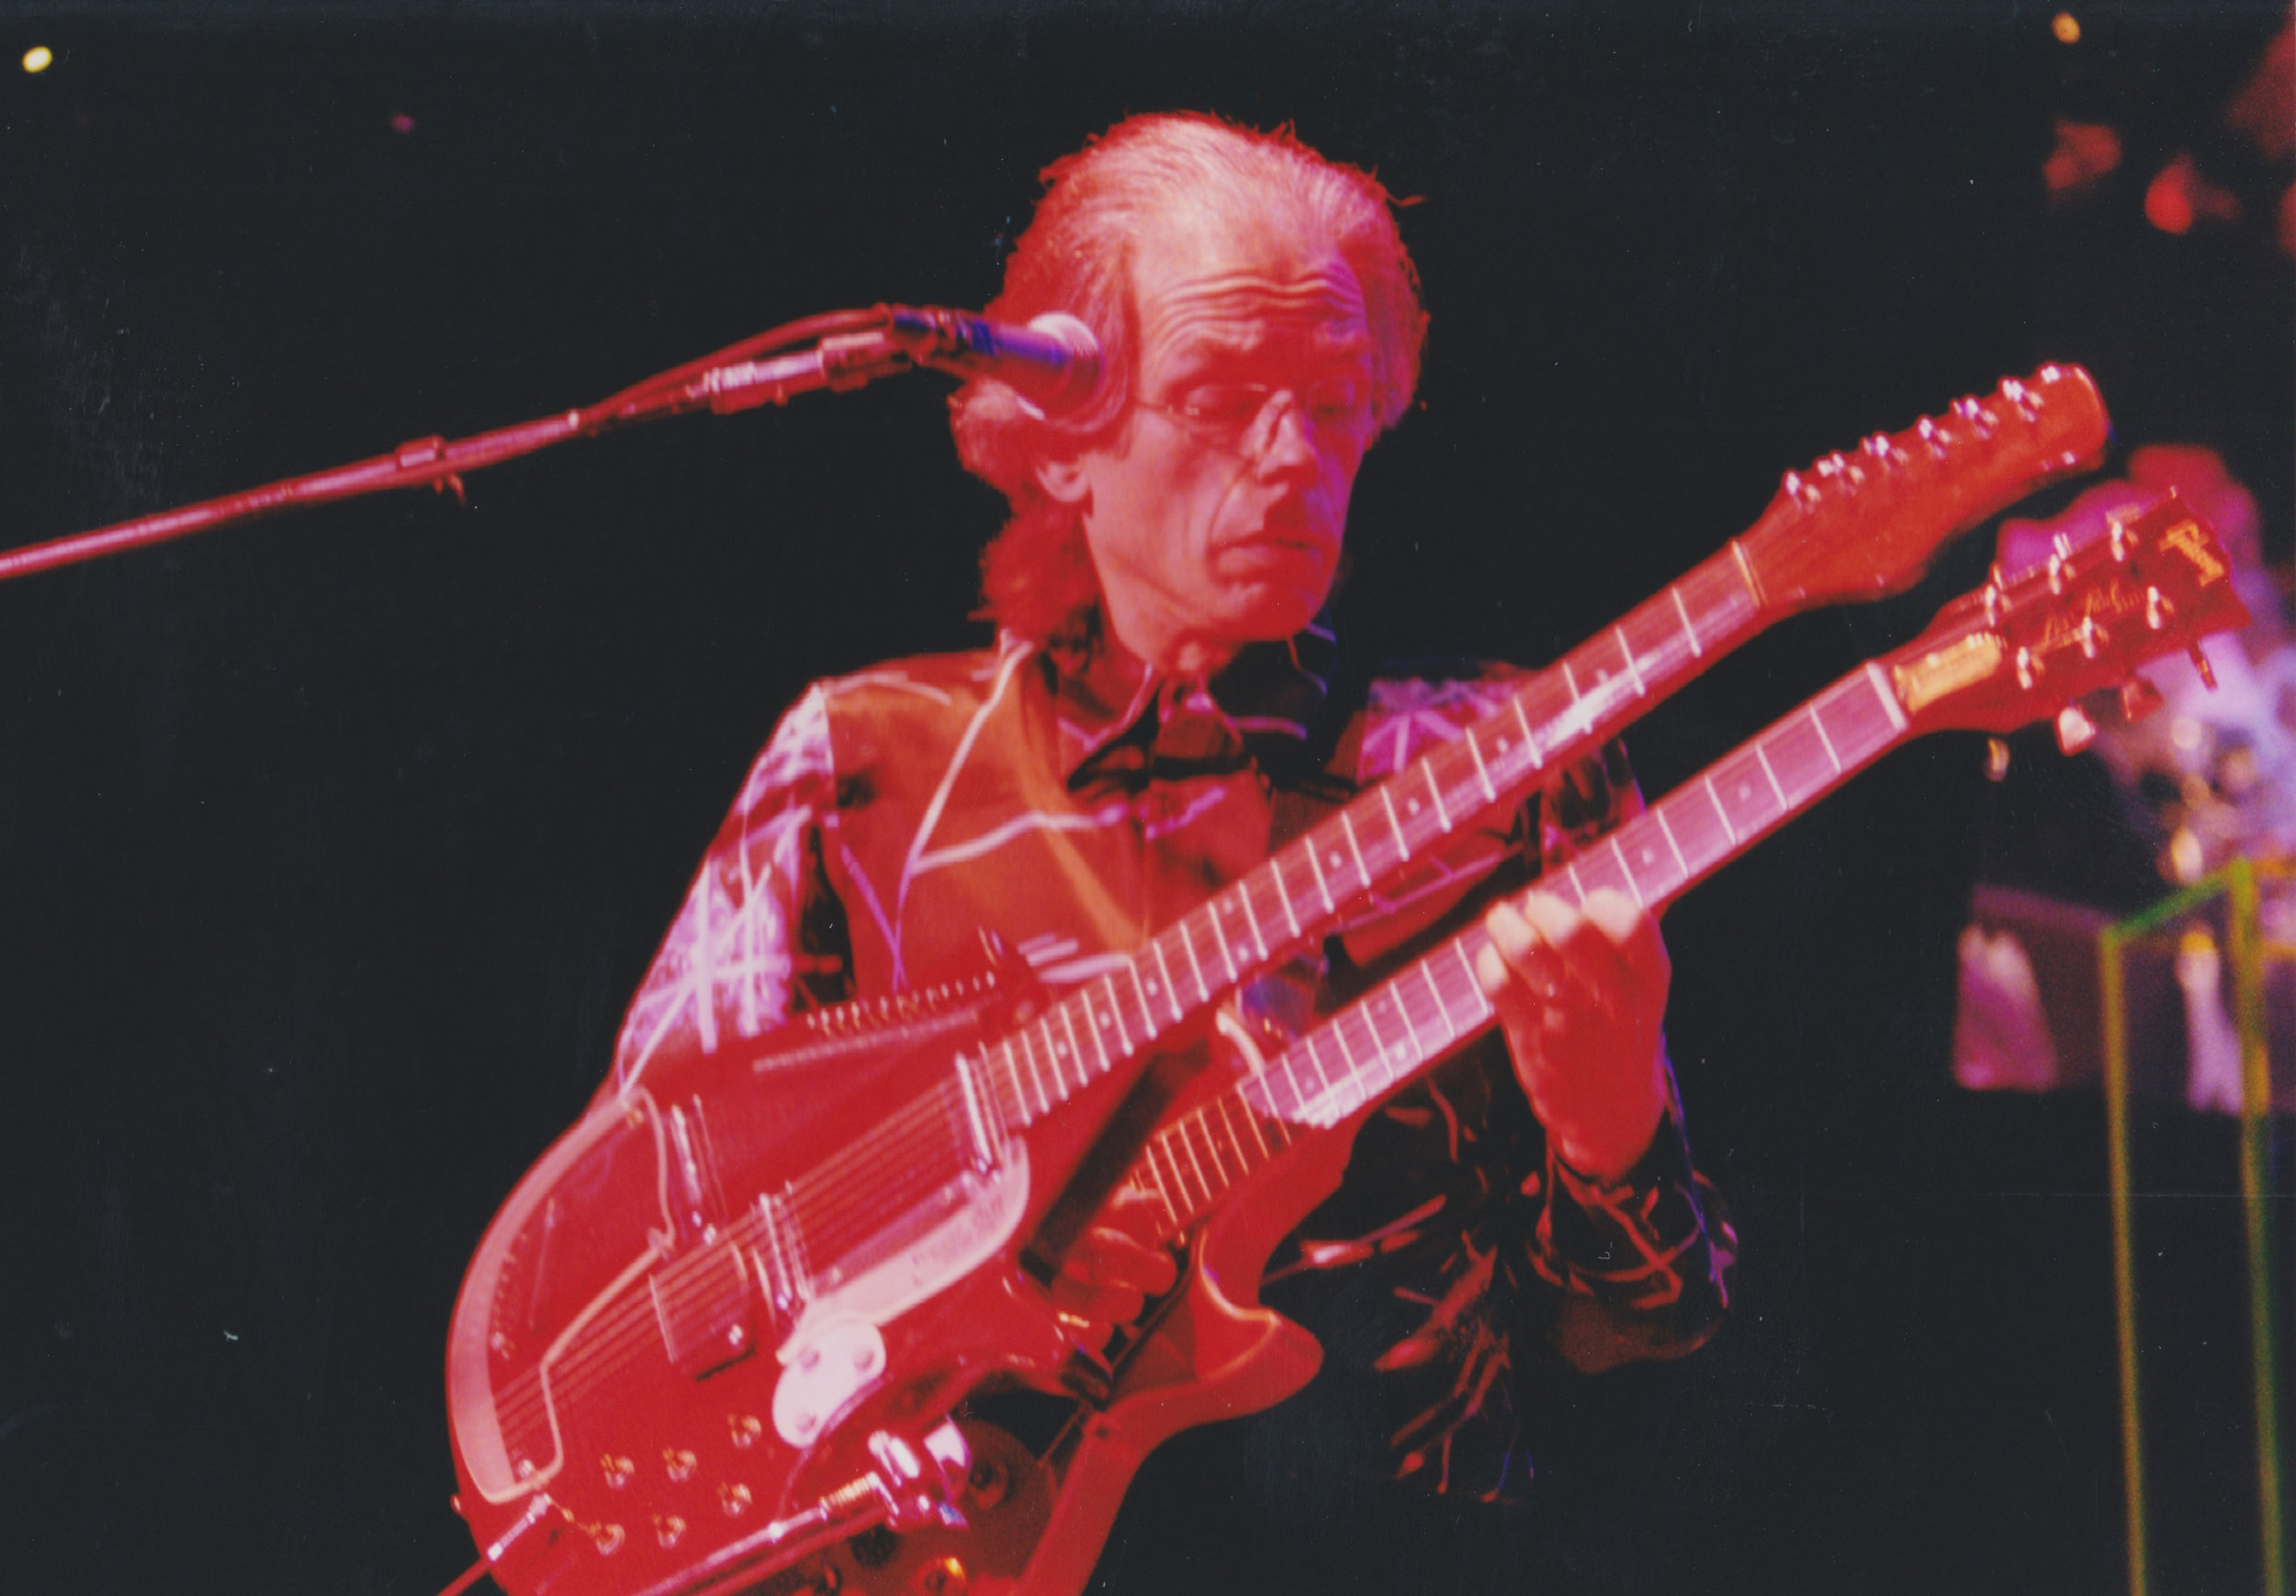 Steve Howe. Photo by RD Mathers